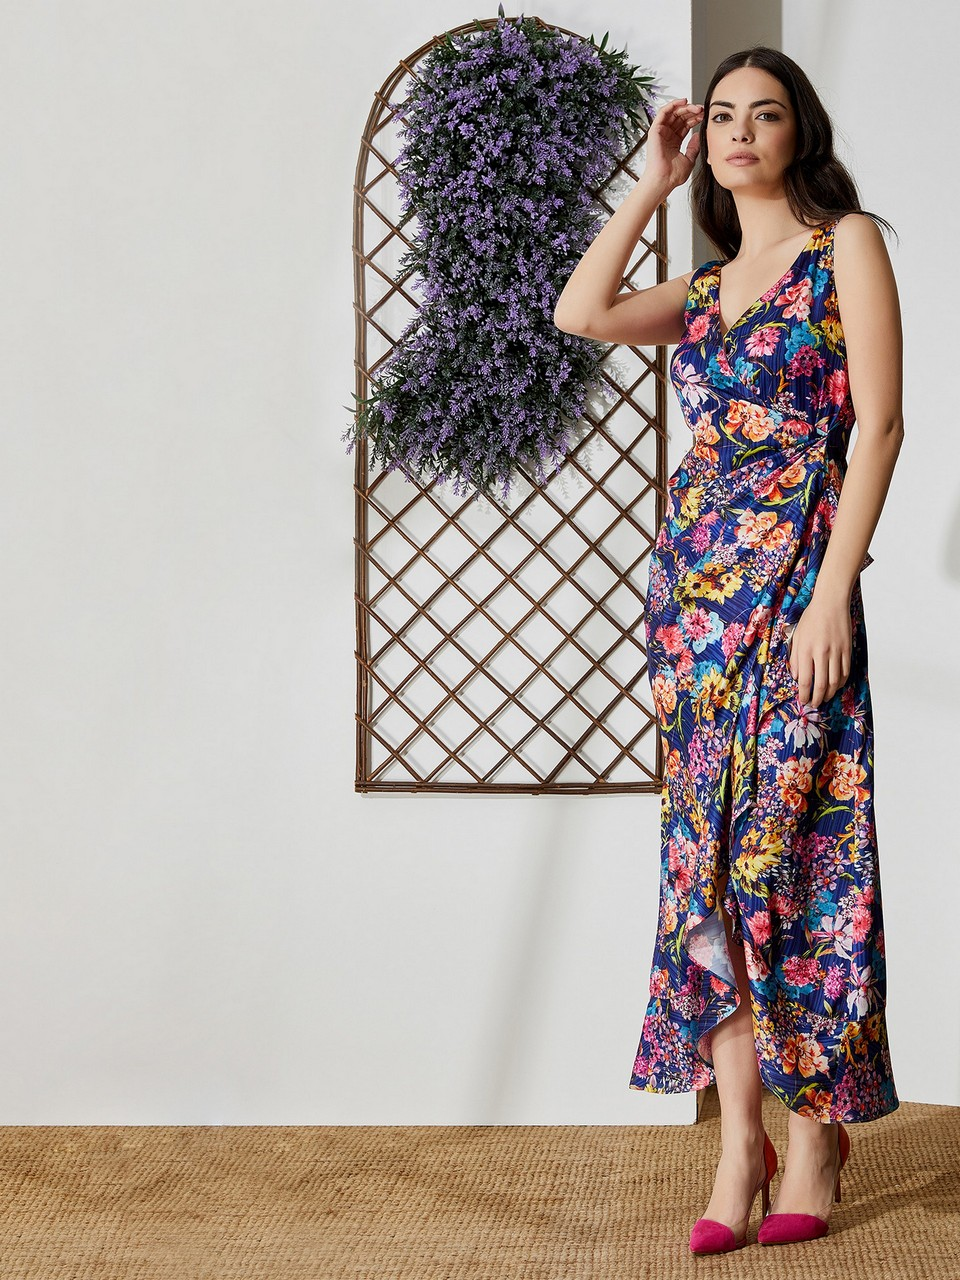 Floral Patterned Maxi Dress With Shoulder Strap